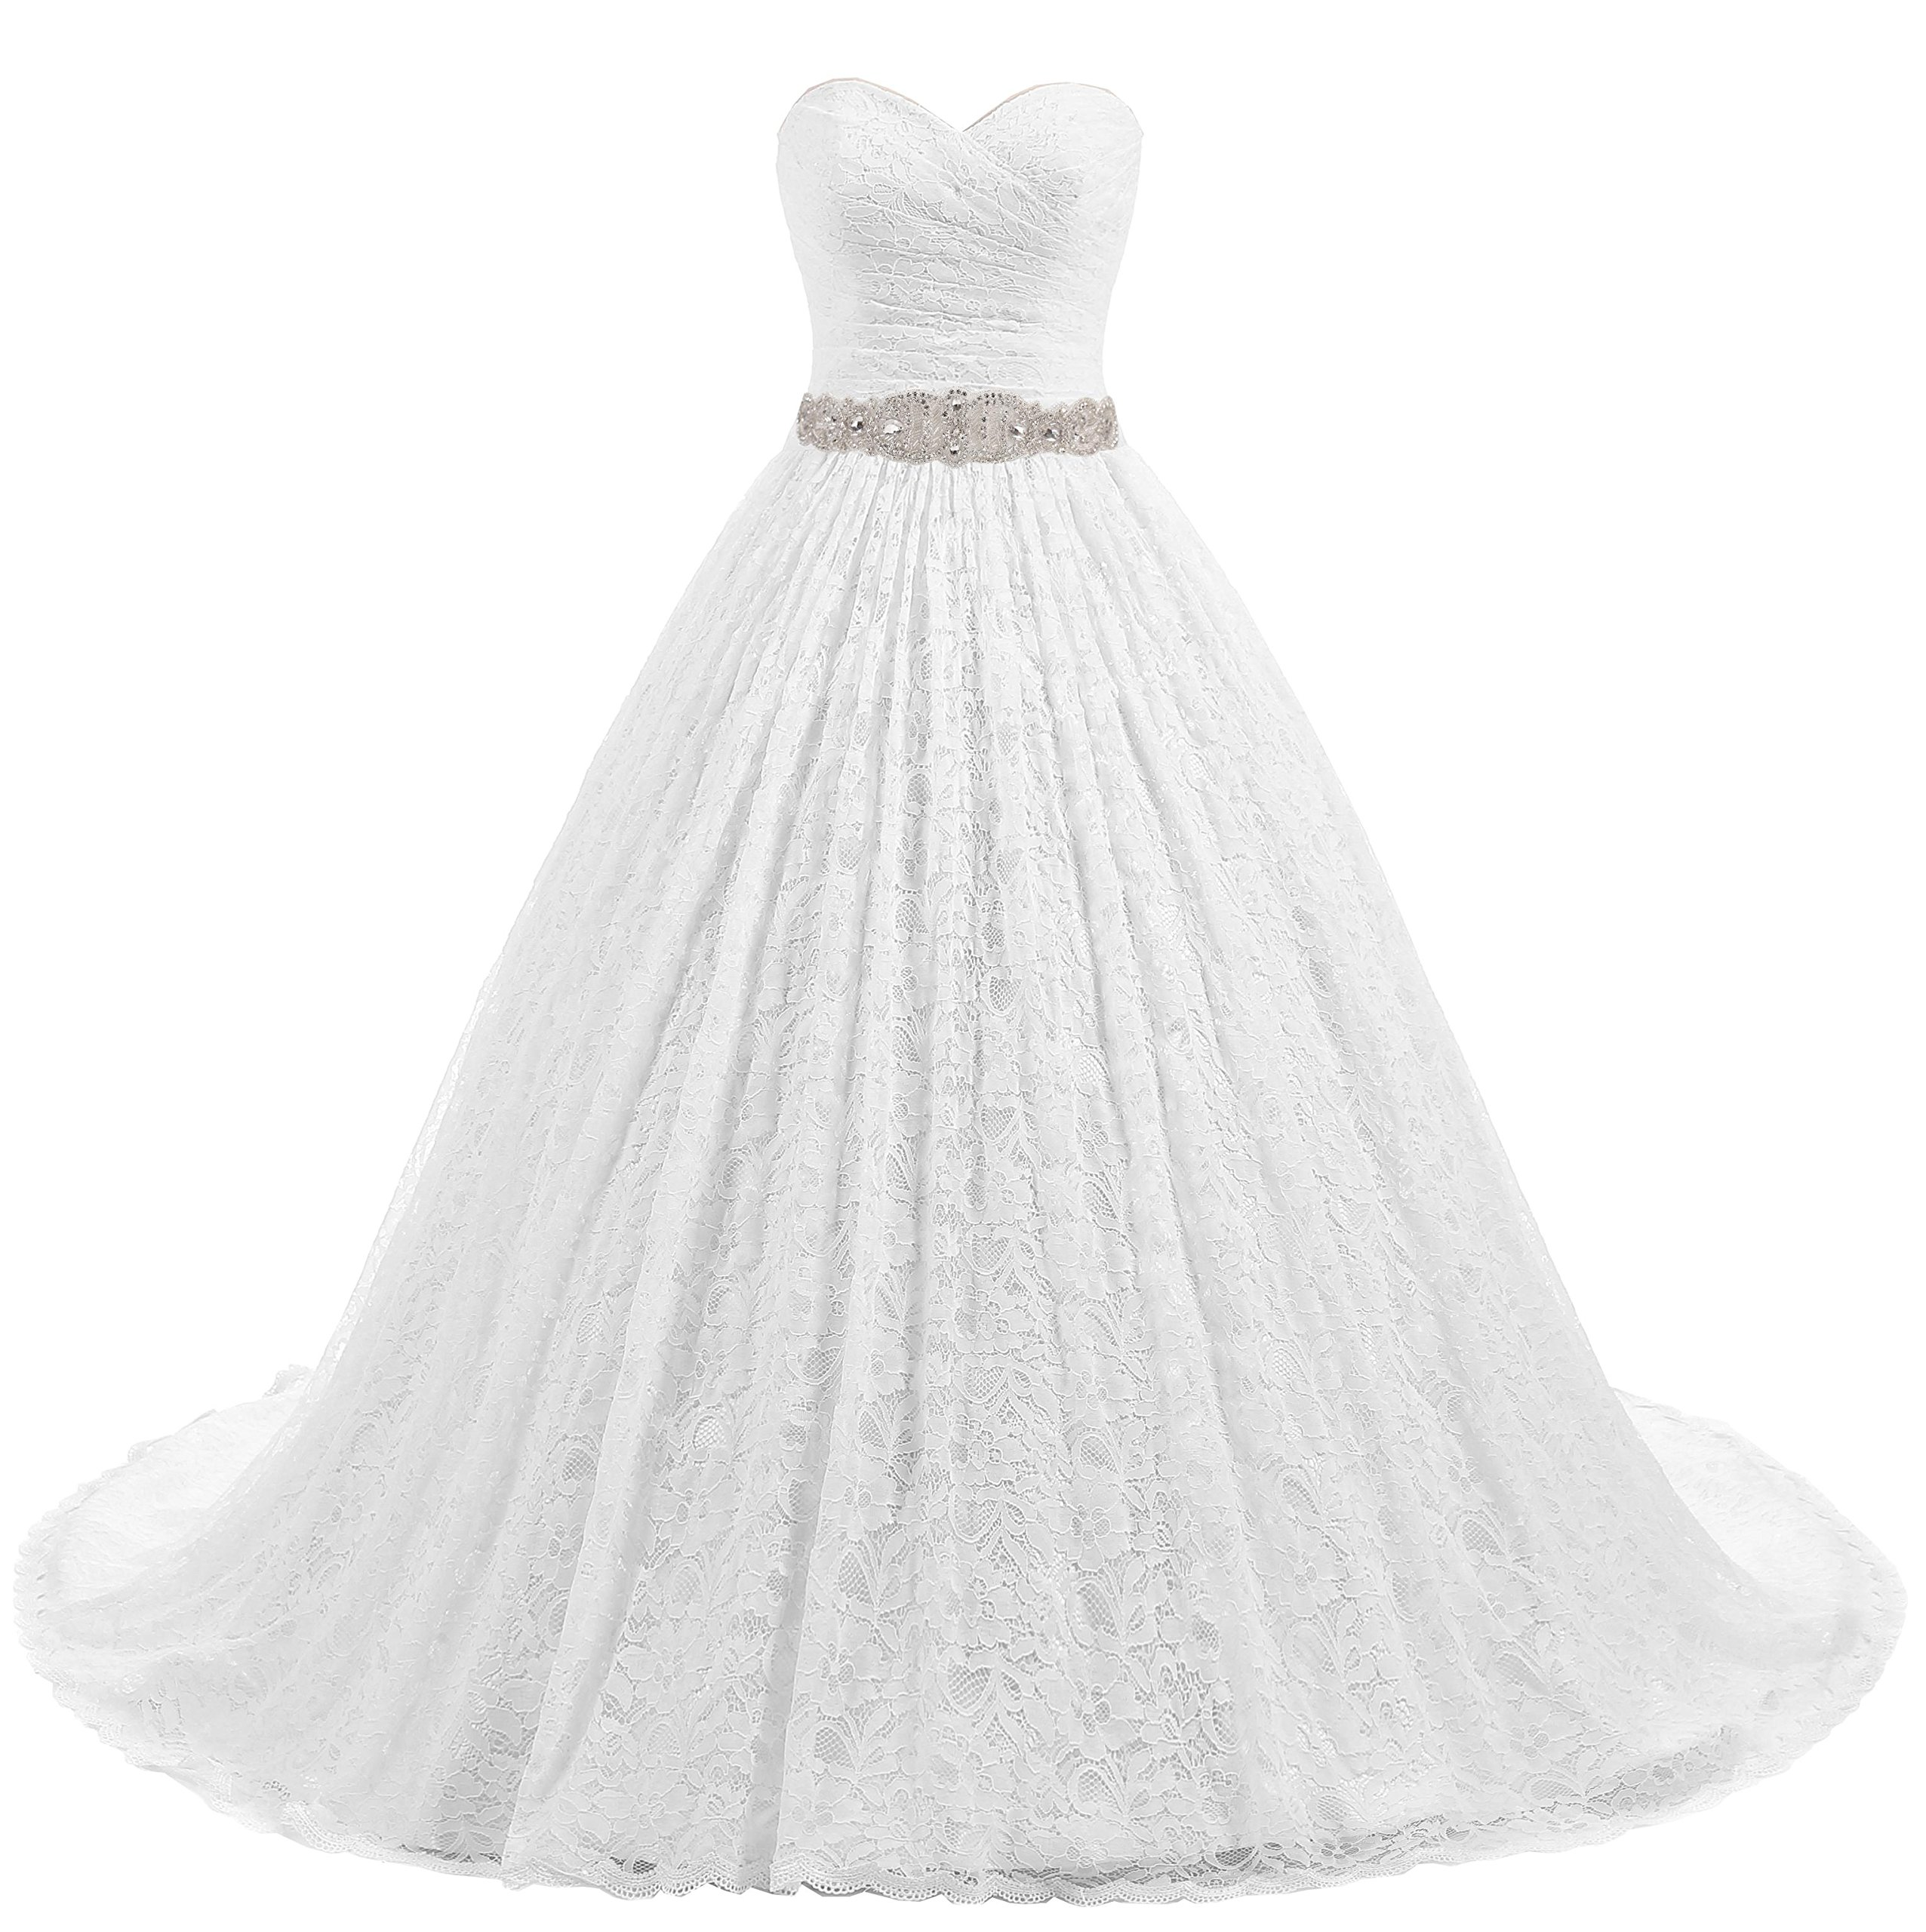 Beautyprom Women's Ball Gown Lace Bridal Wedding Dresses (White-Train, US14) by Beautyprom